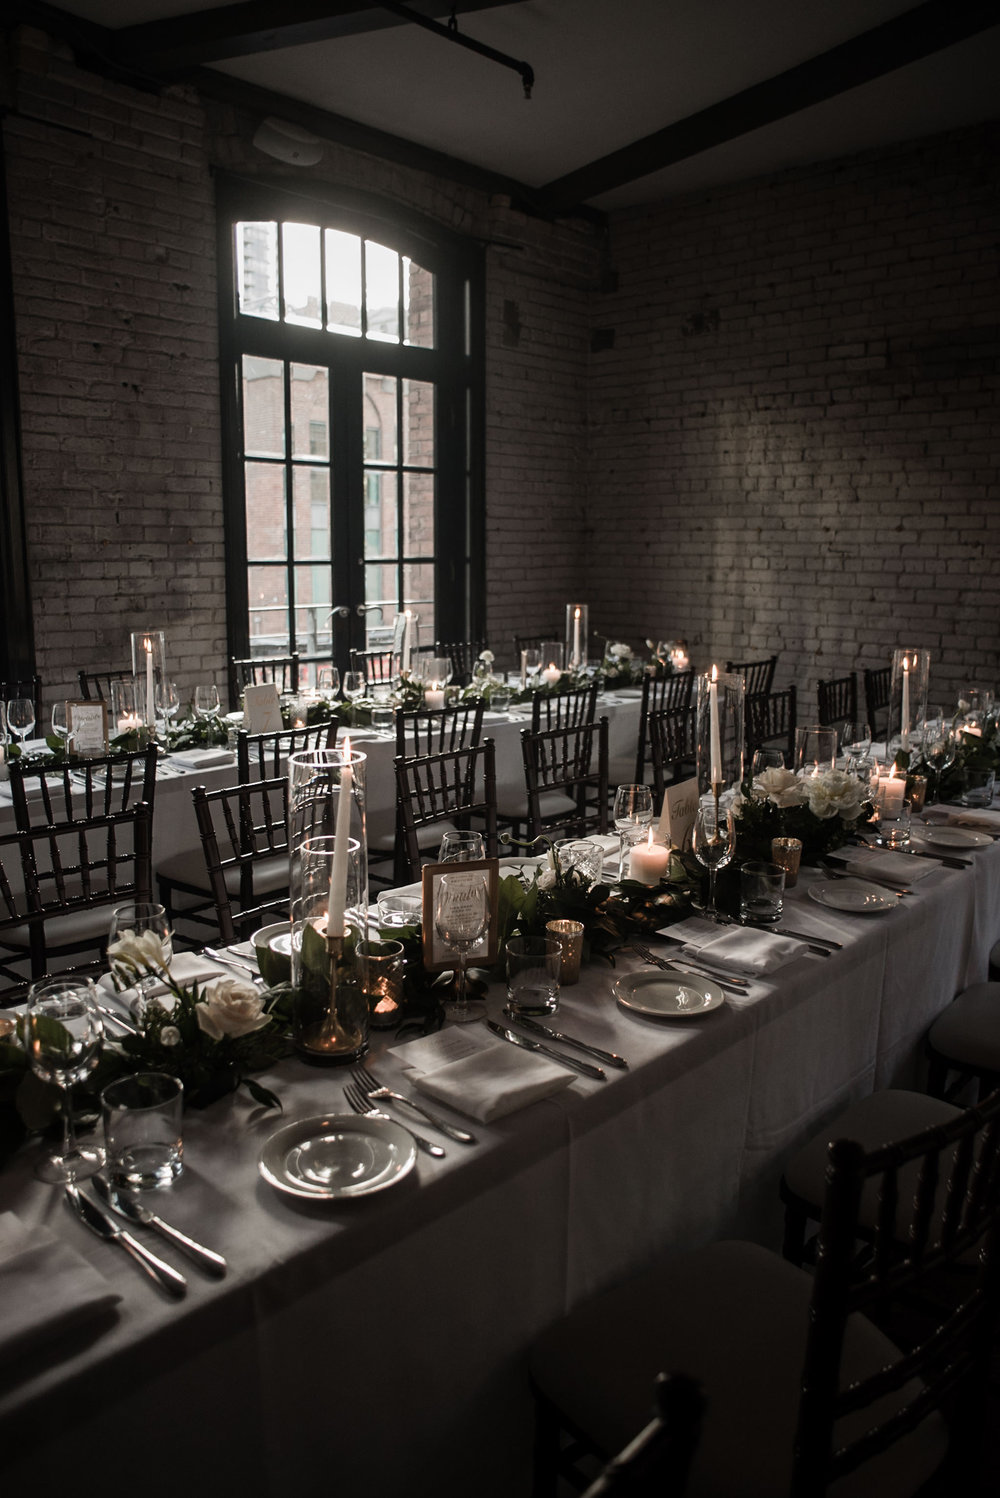 085-storys-building-reception-decor-candles-garland-romantic-industrial.jpg